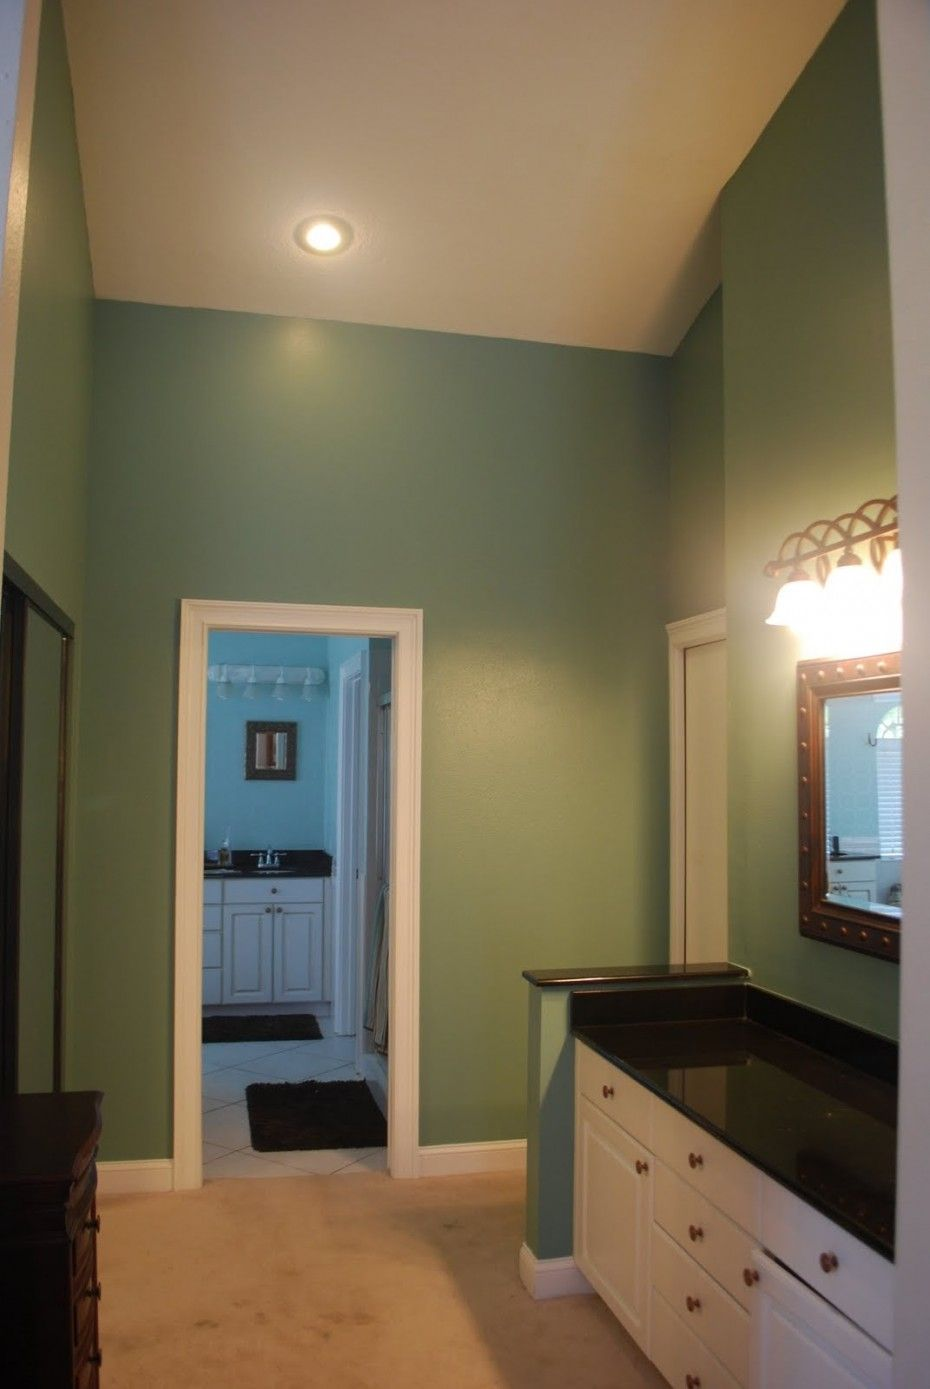 Bathroom paint colors ideas warm green bathroom painting for Colourful bathroom ideas